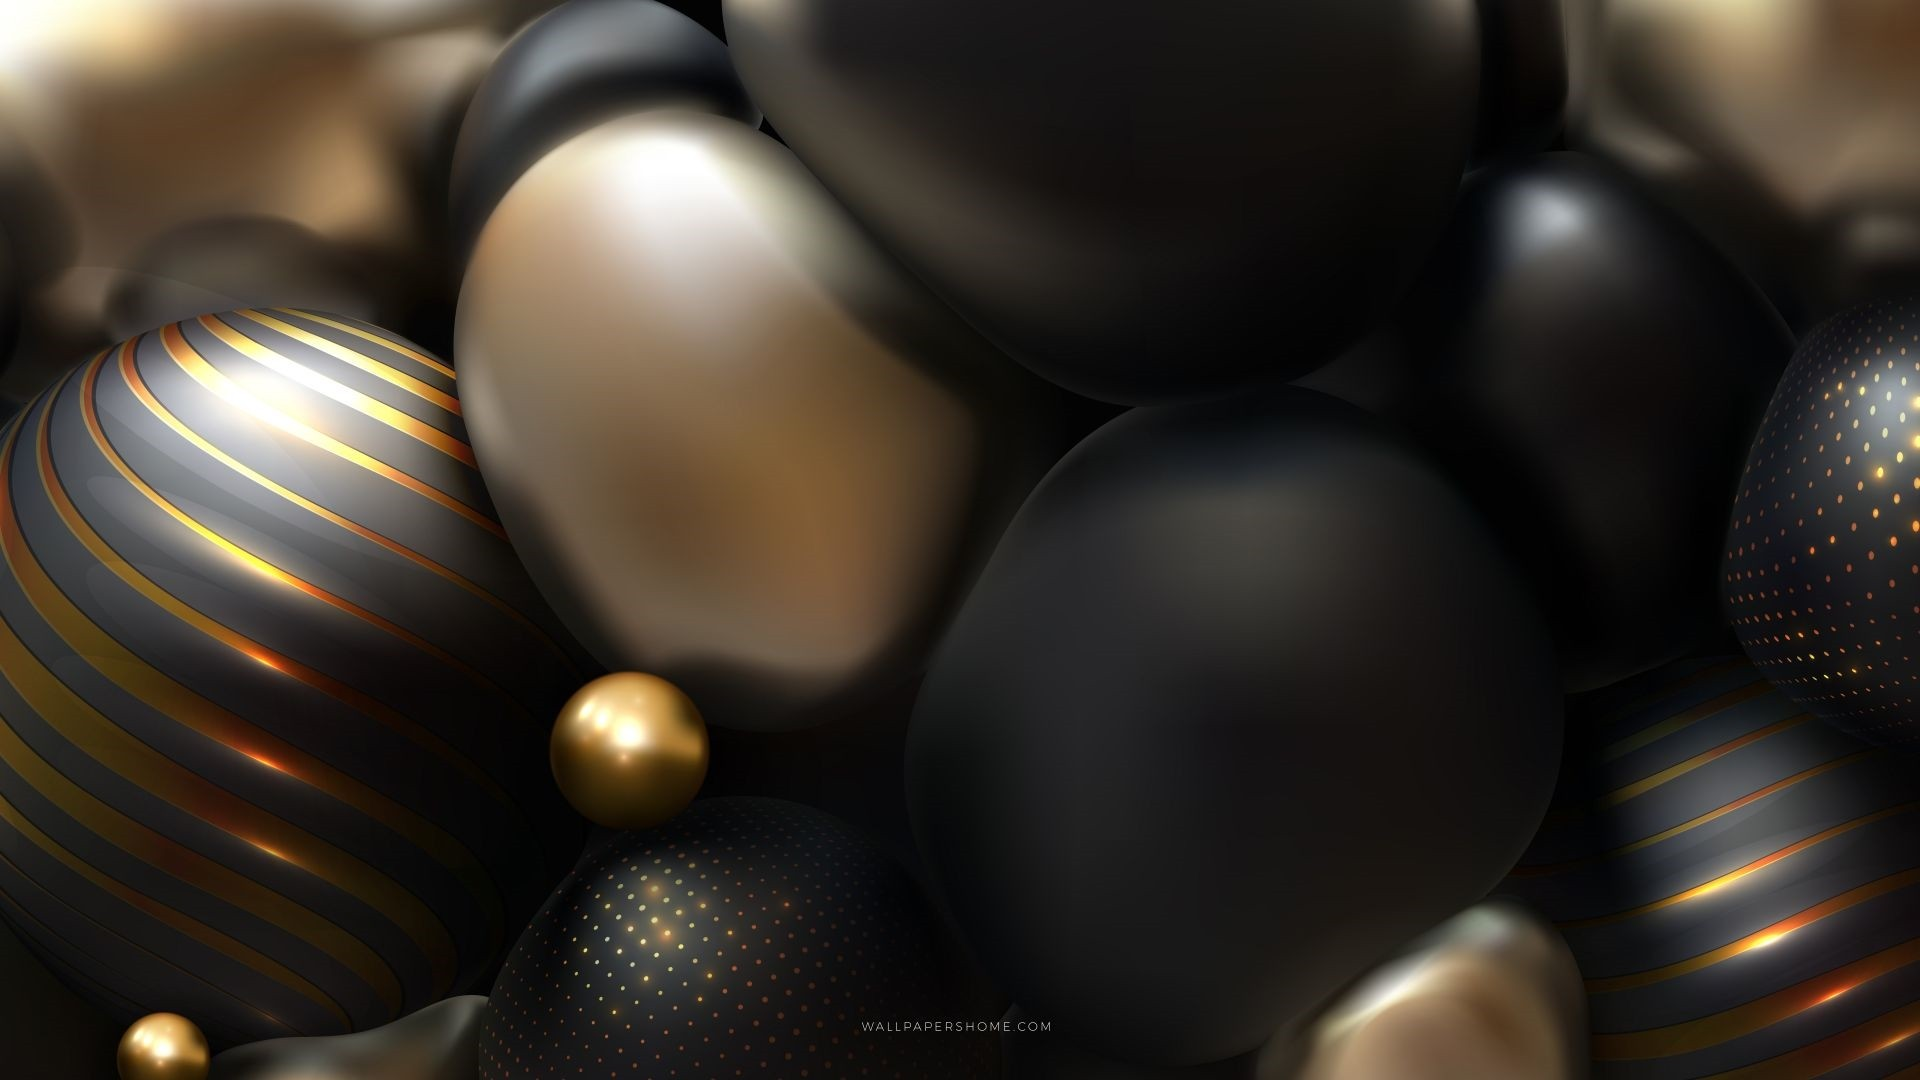 Jewelry Pearls wallpaper for pc